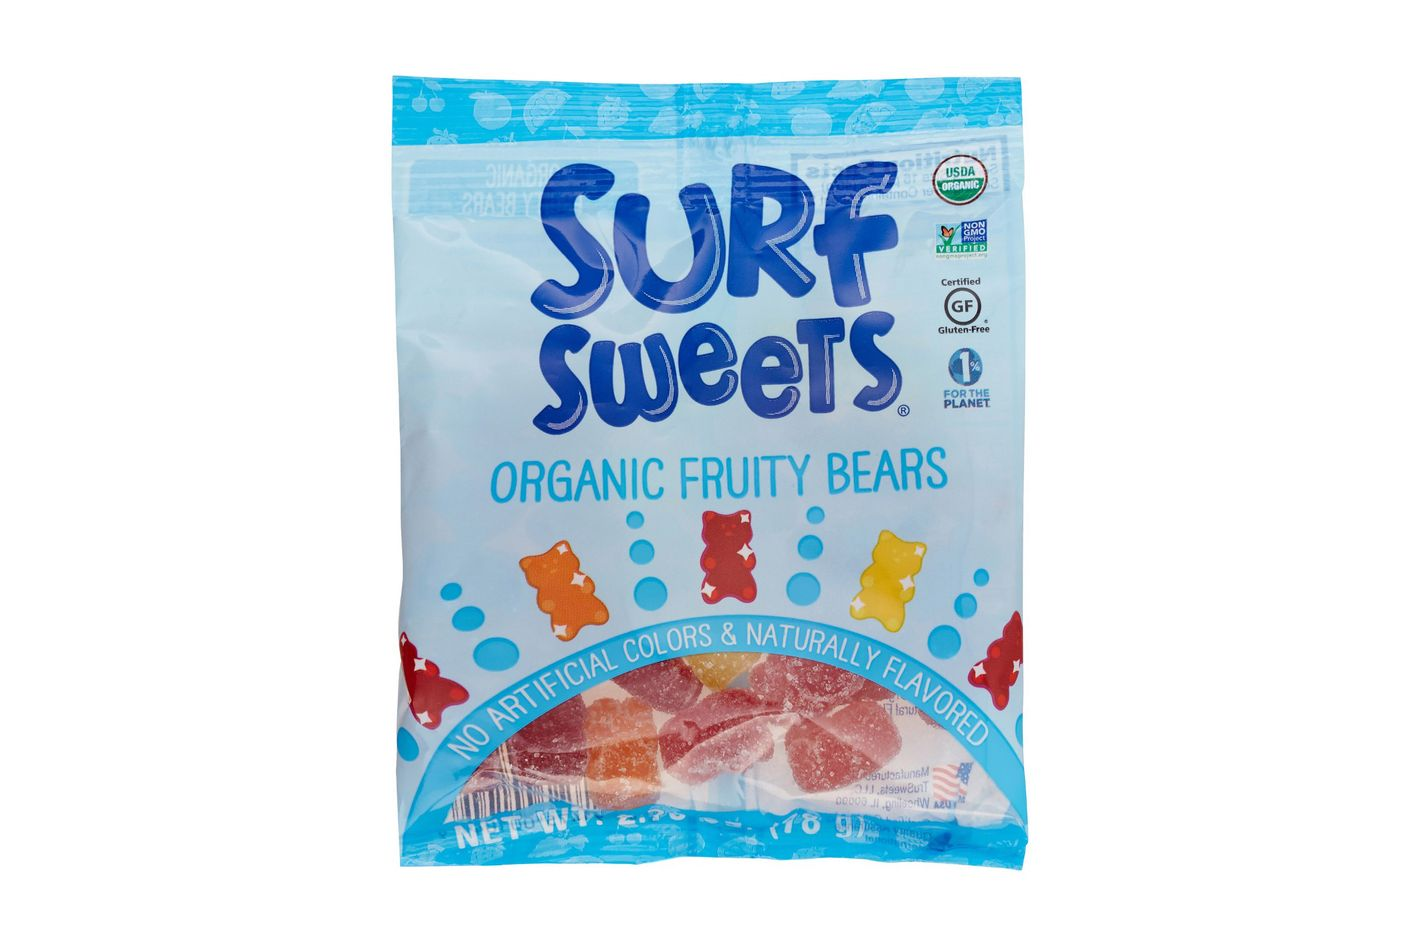 Surf Sweets Organic Fruity Bears, 2.75 Ounce Bags